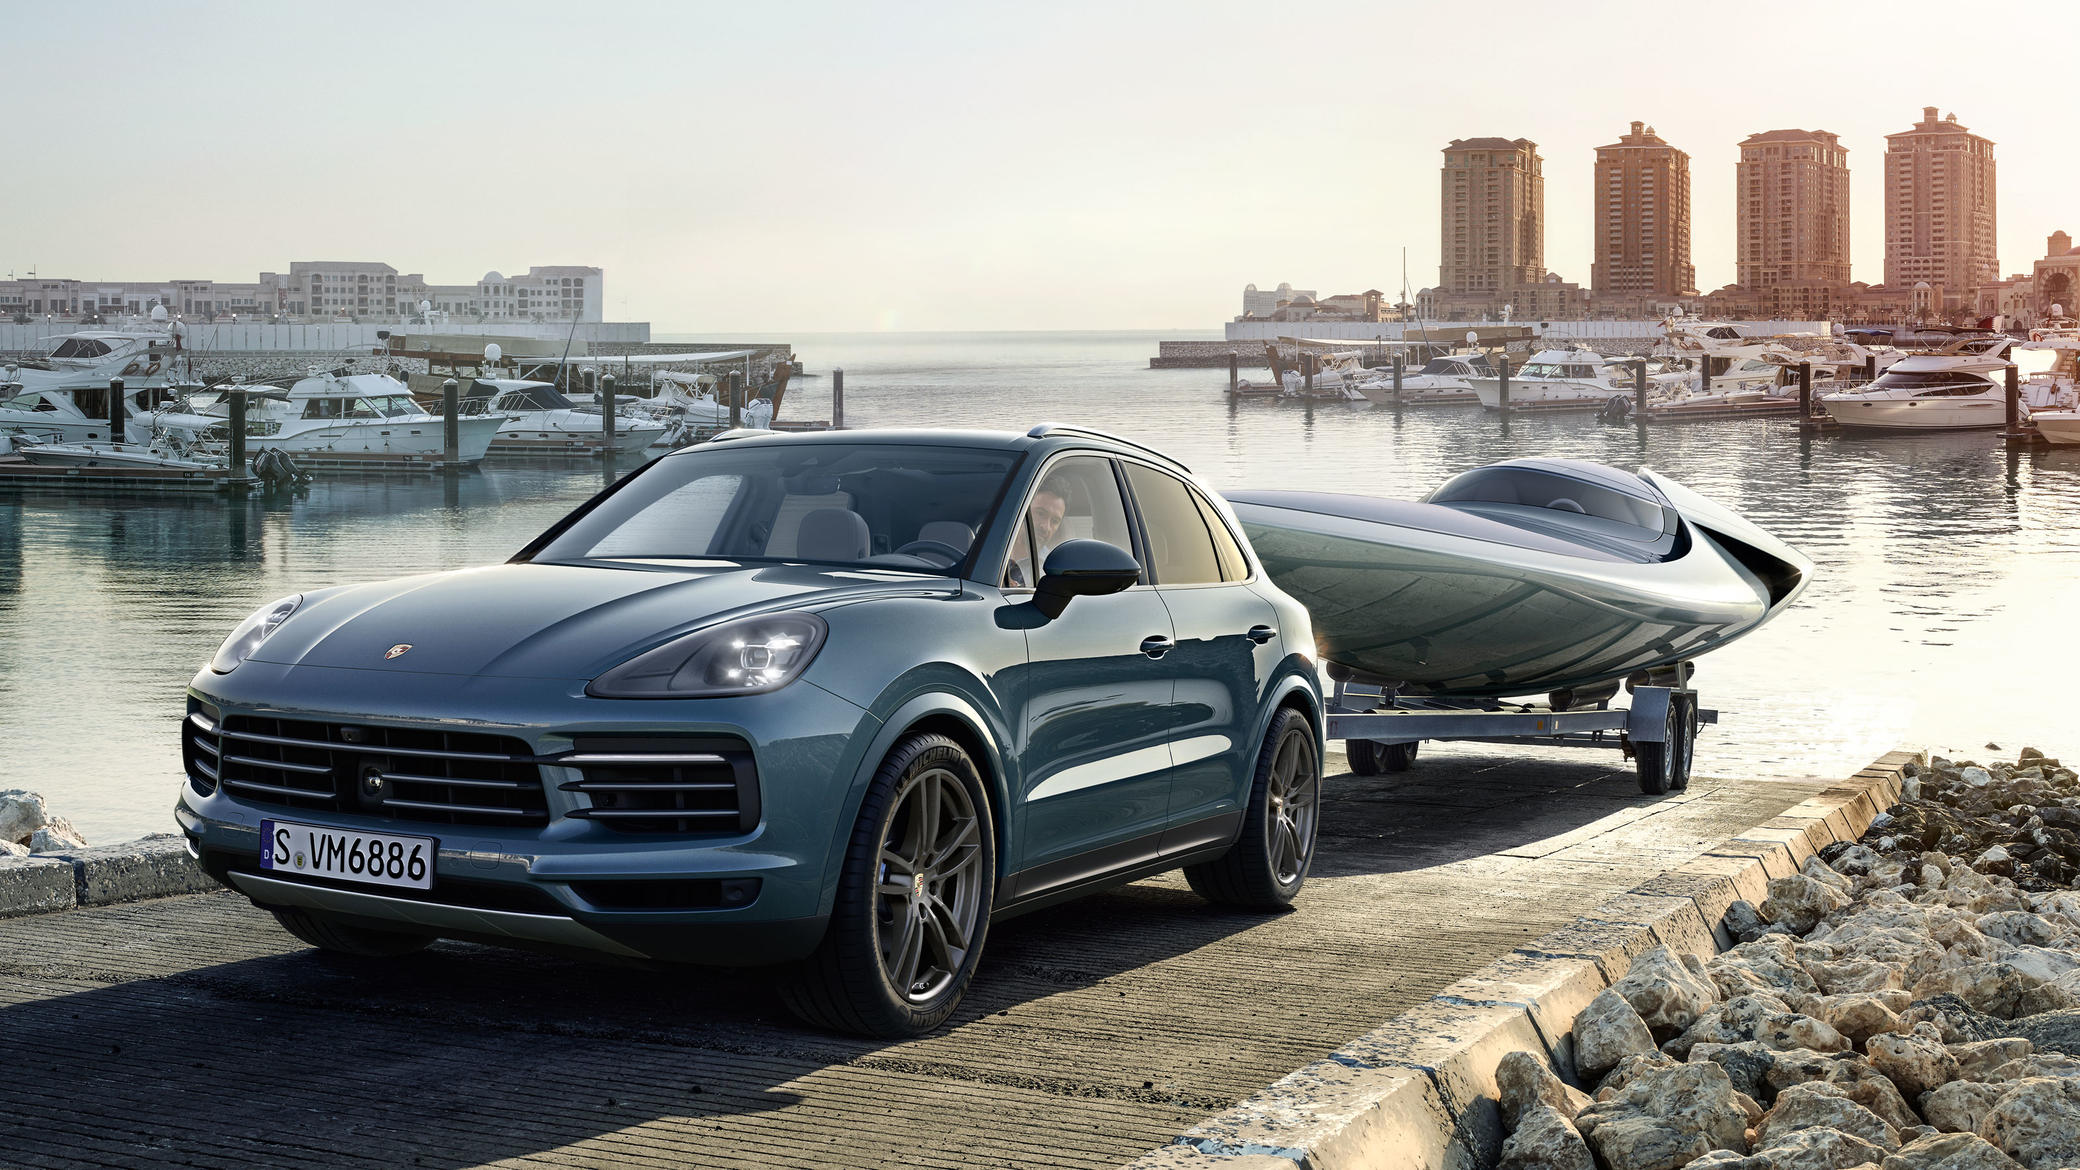 Bfm Even More 911 In An Suv The New Porsche Cayenne Turbo